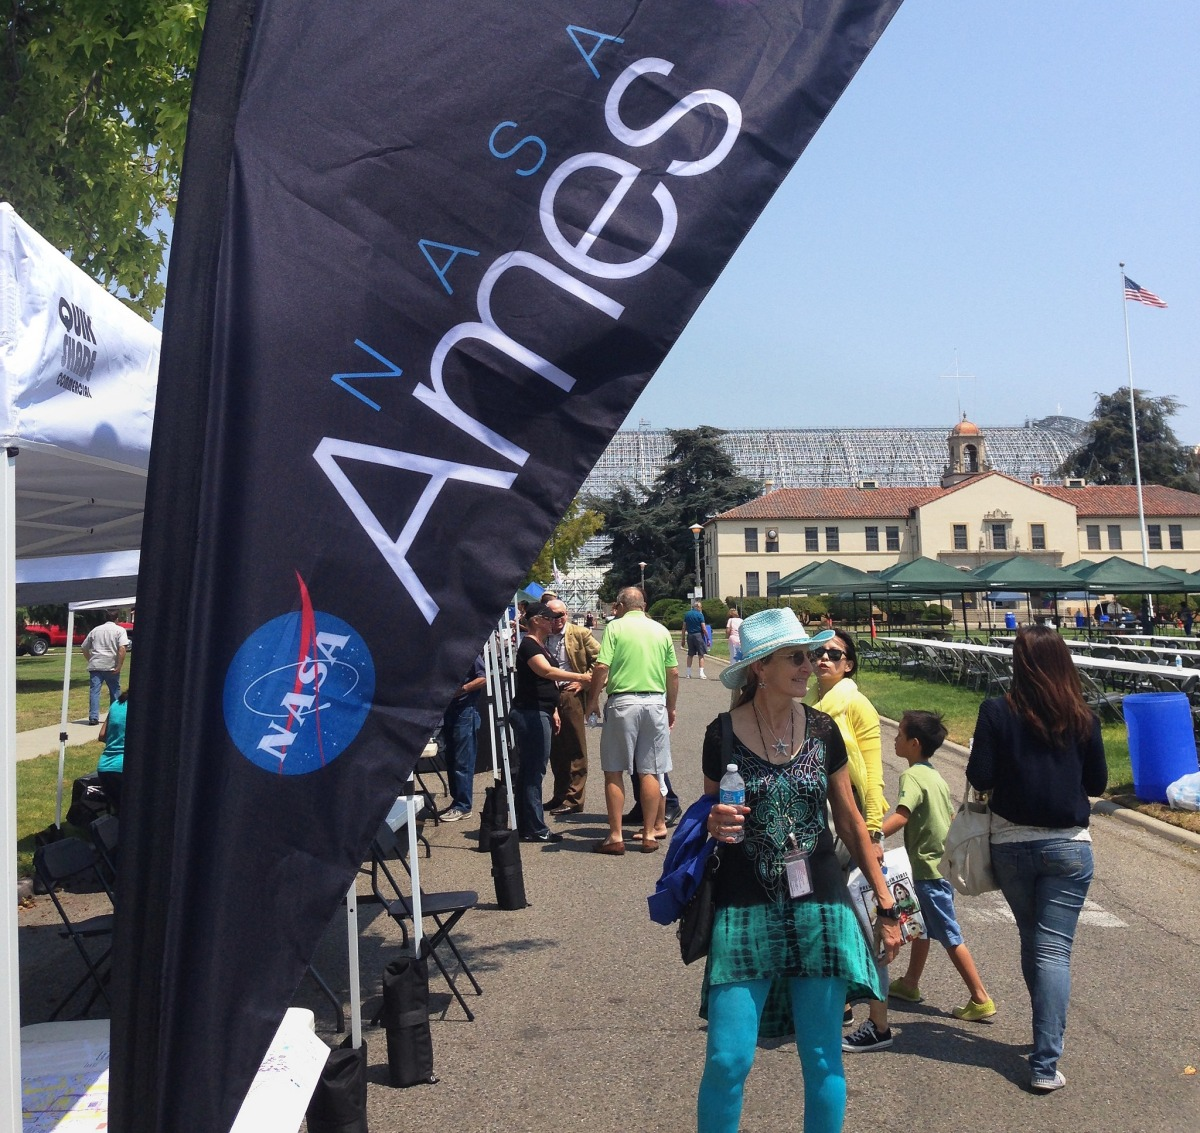 My internship at NASA Ames - What is NASA